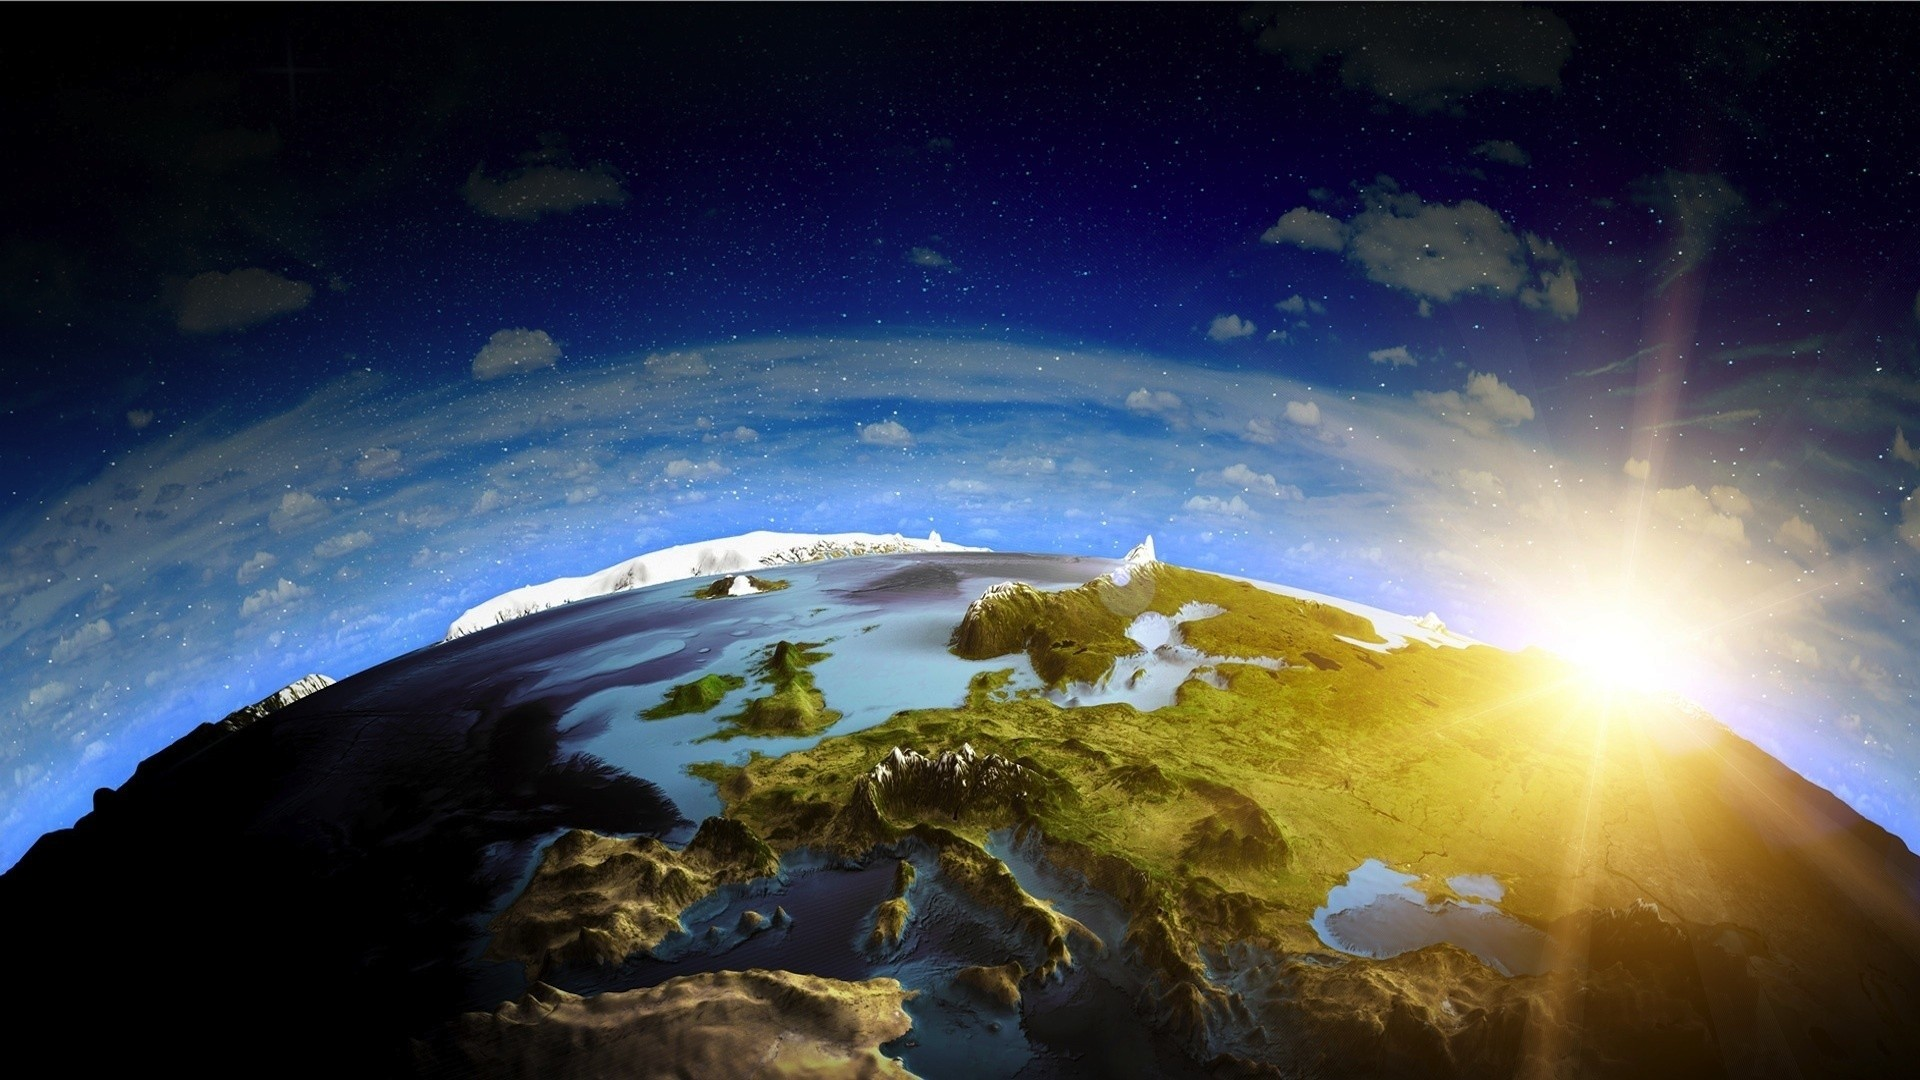 General 1920x1080 Europe world planet Earth space digital art space art landscape